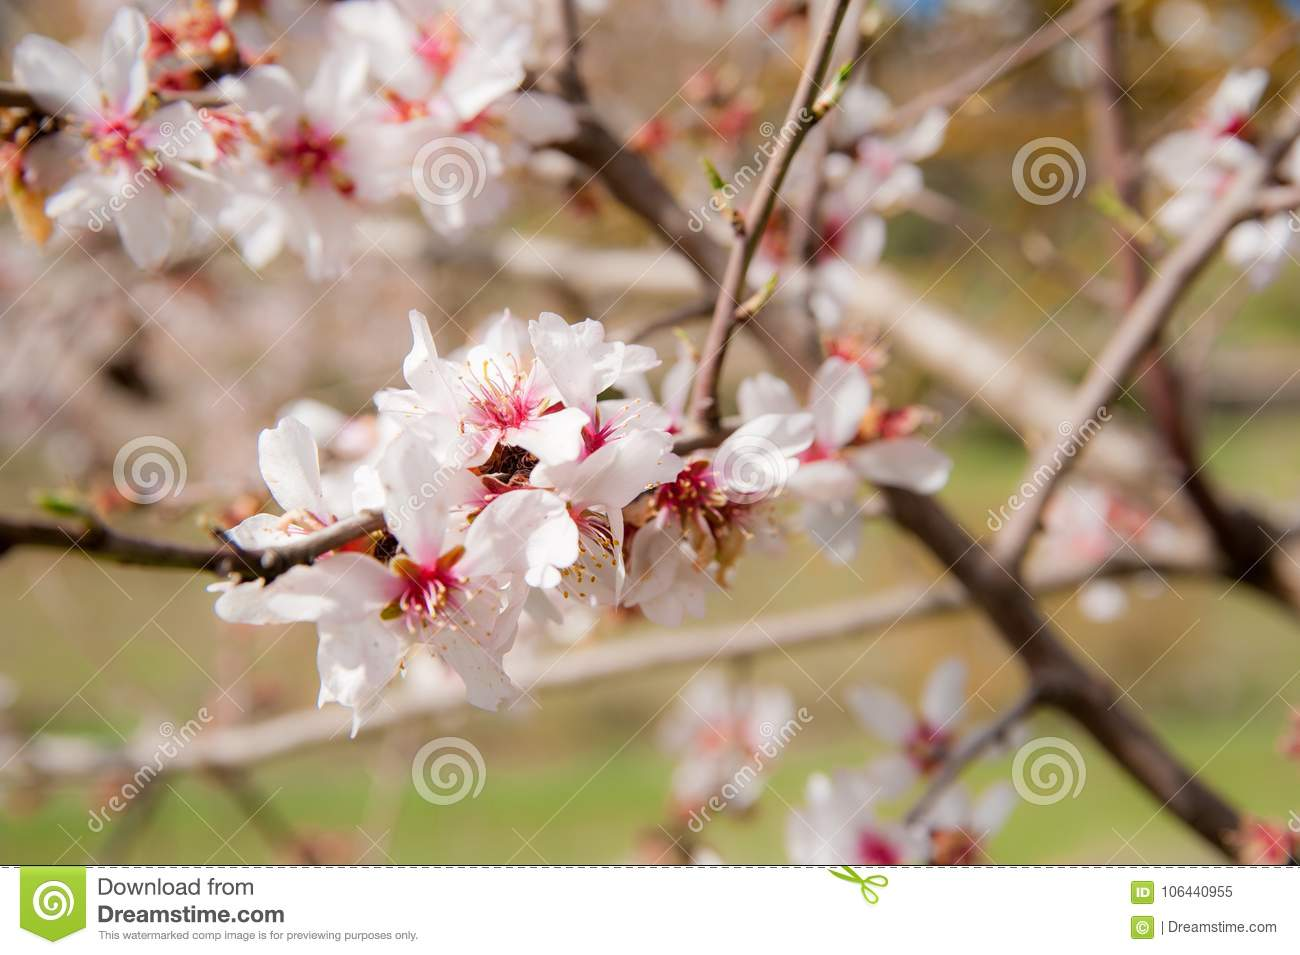 White Plum Flowers In A Bright Scenery Stock Image Image Of